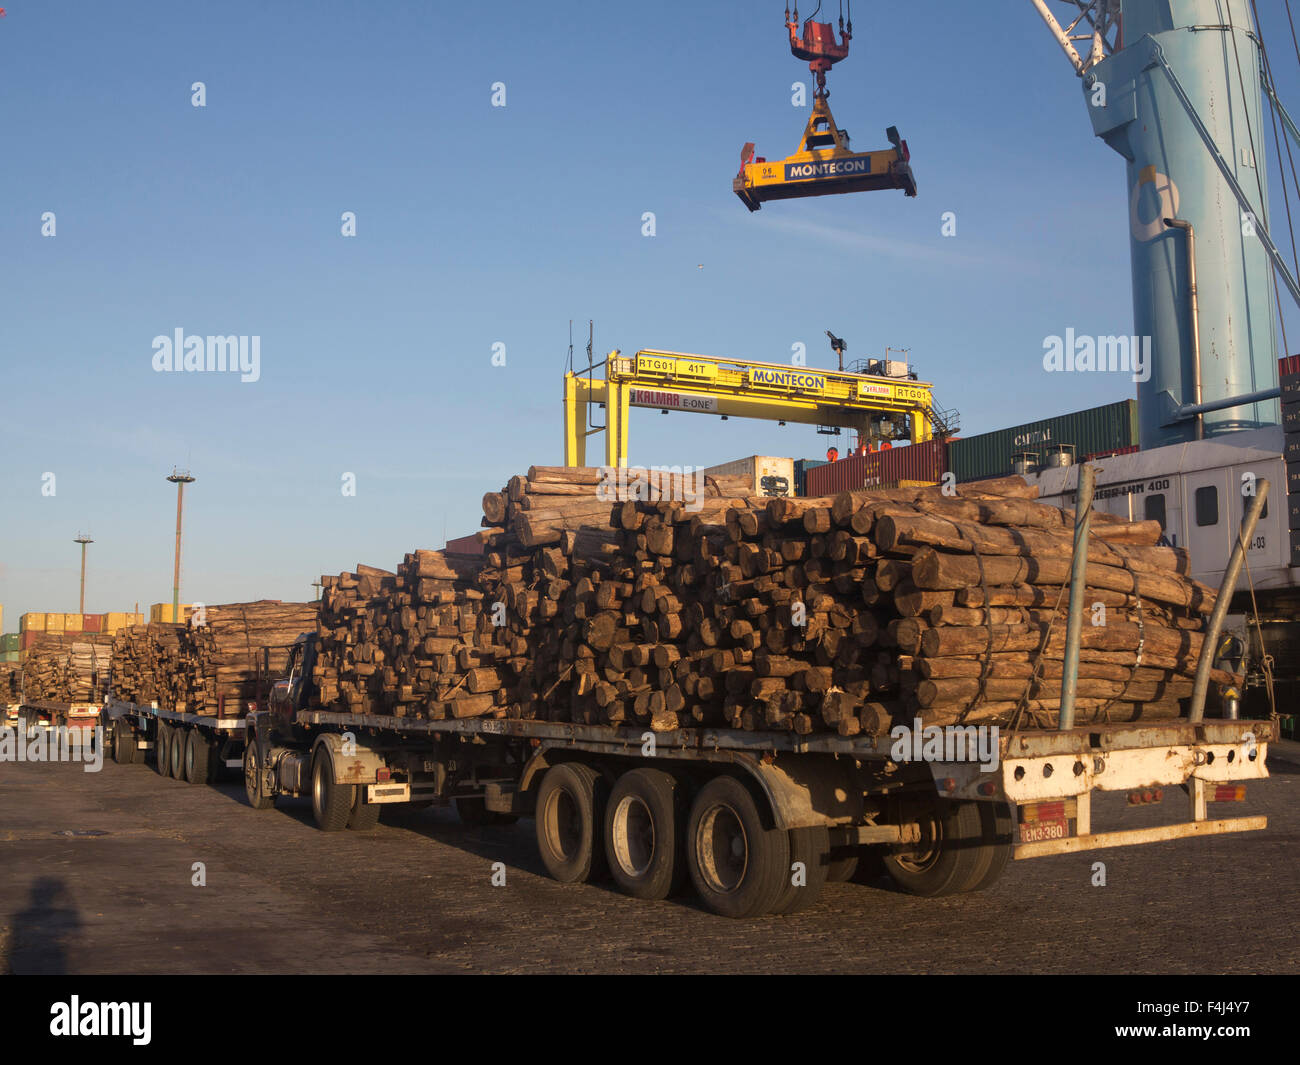 Timber loaded for export at the harbour in Montevideo, Uruguay, South America Stock Photo